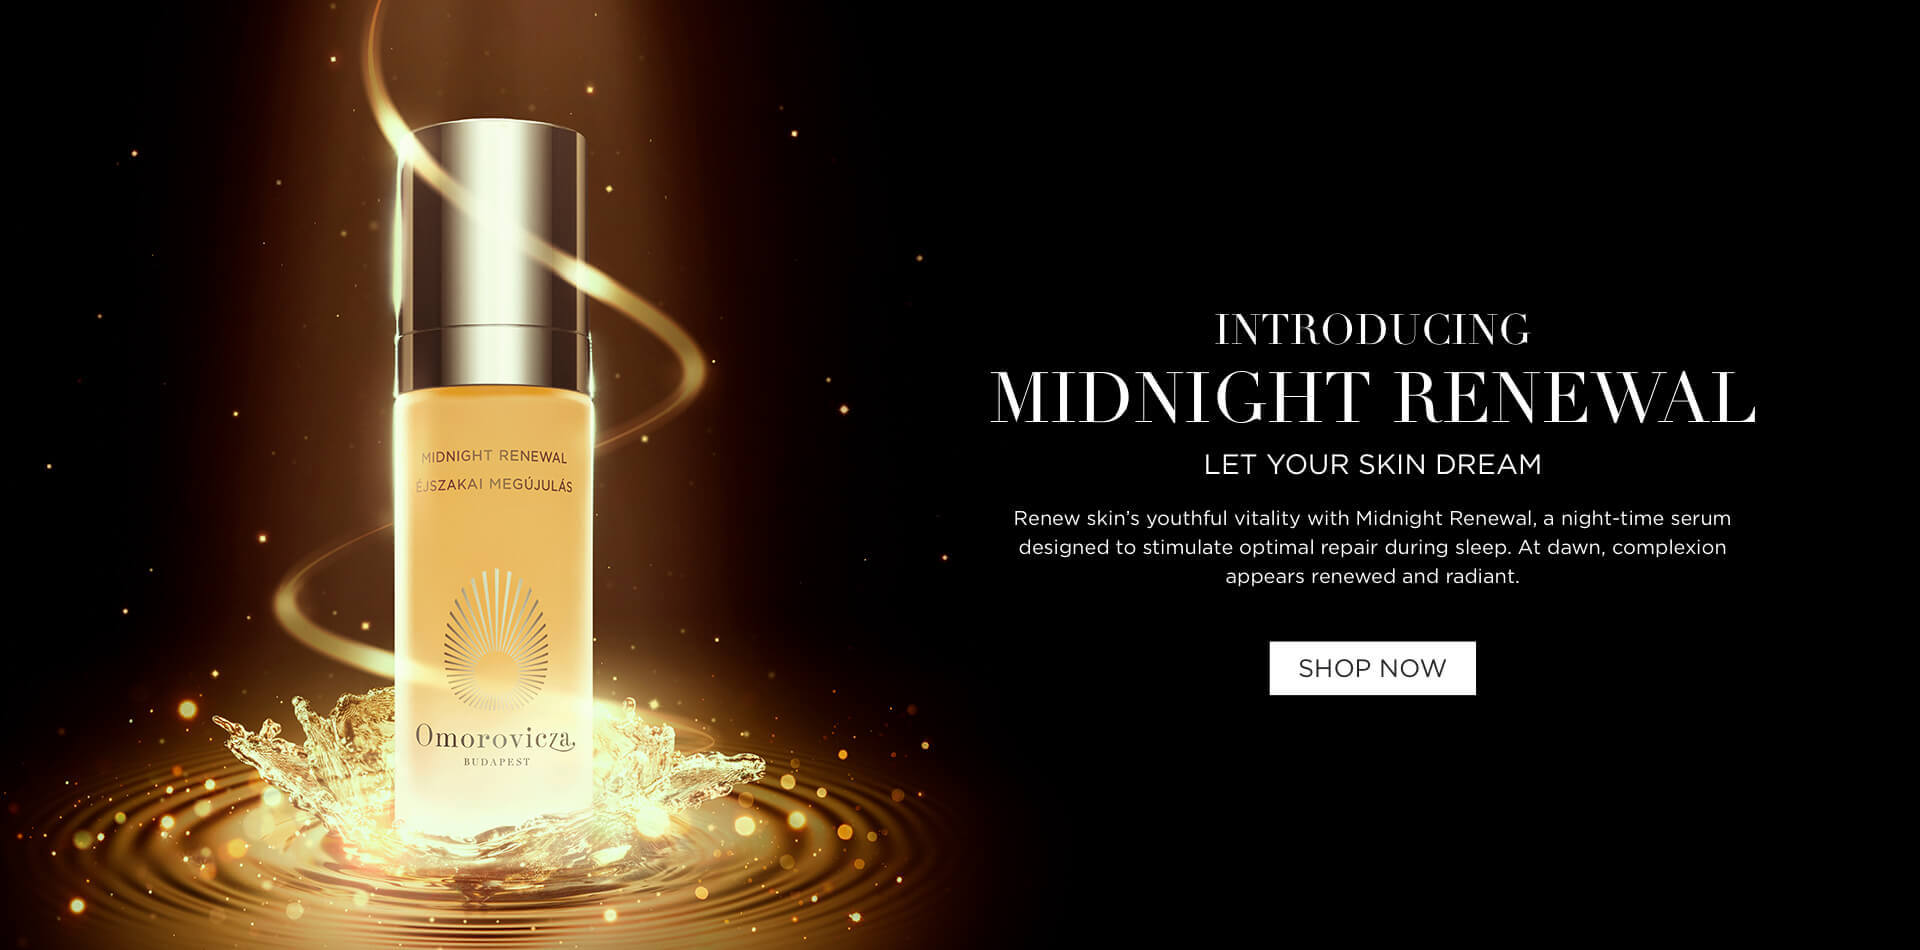 Introducing Midnight Renewal. Let your skin dream. Renew skin's vitality with Midnight Renewal a night-time hero designed to stimulate optimal repair during sleep. At dawn, complexion appears renewed and radiant.